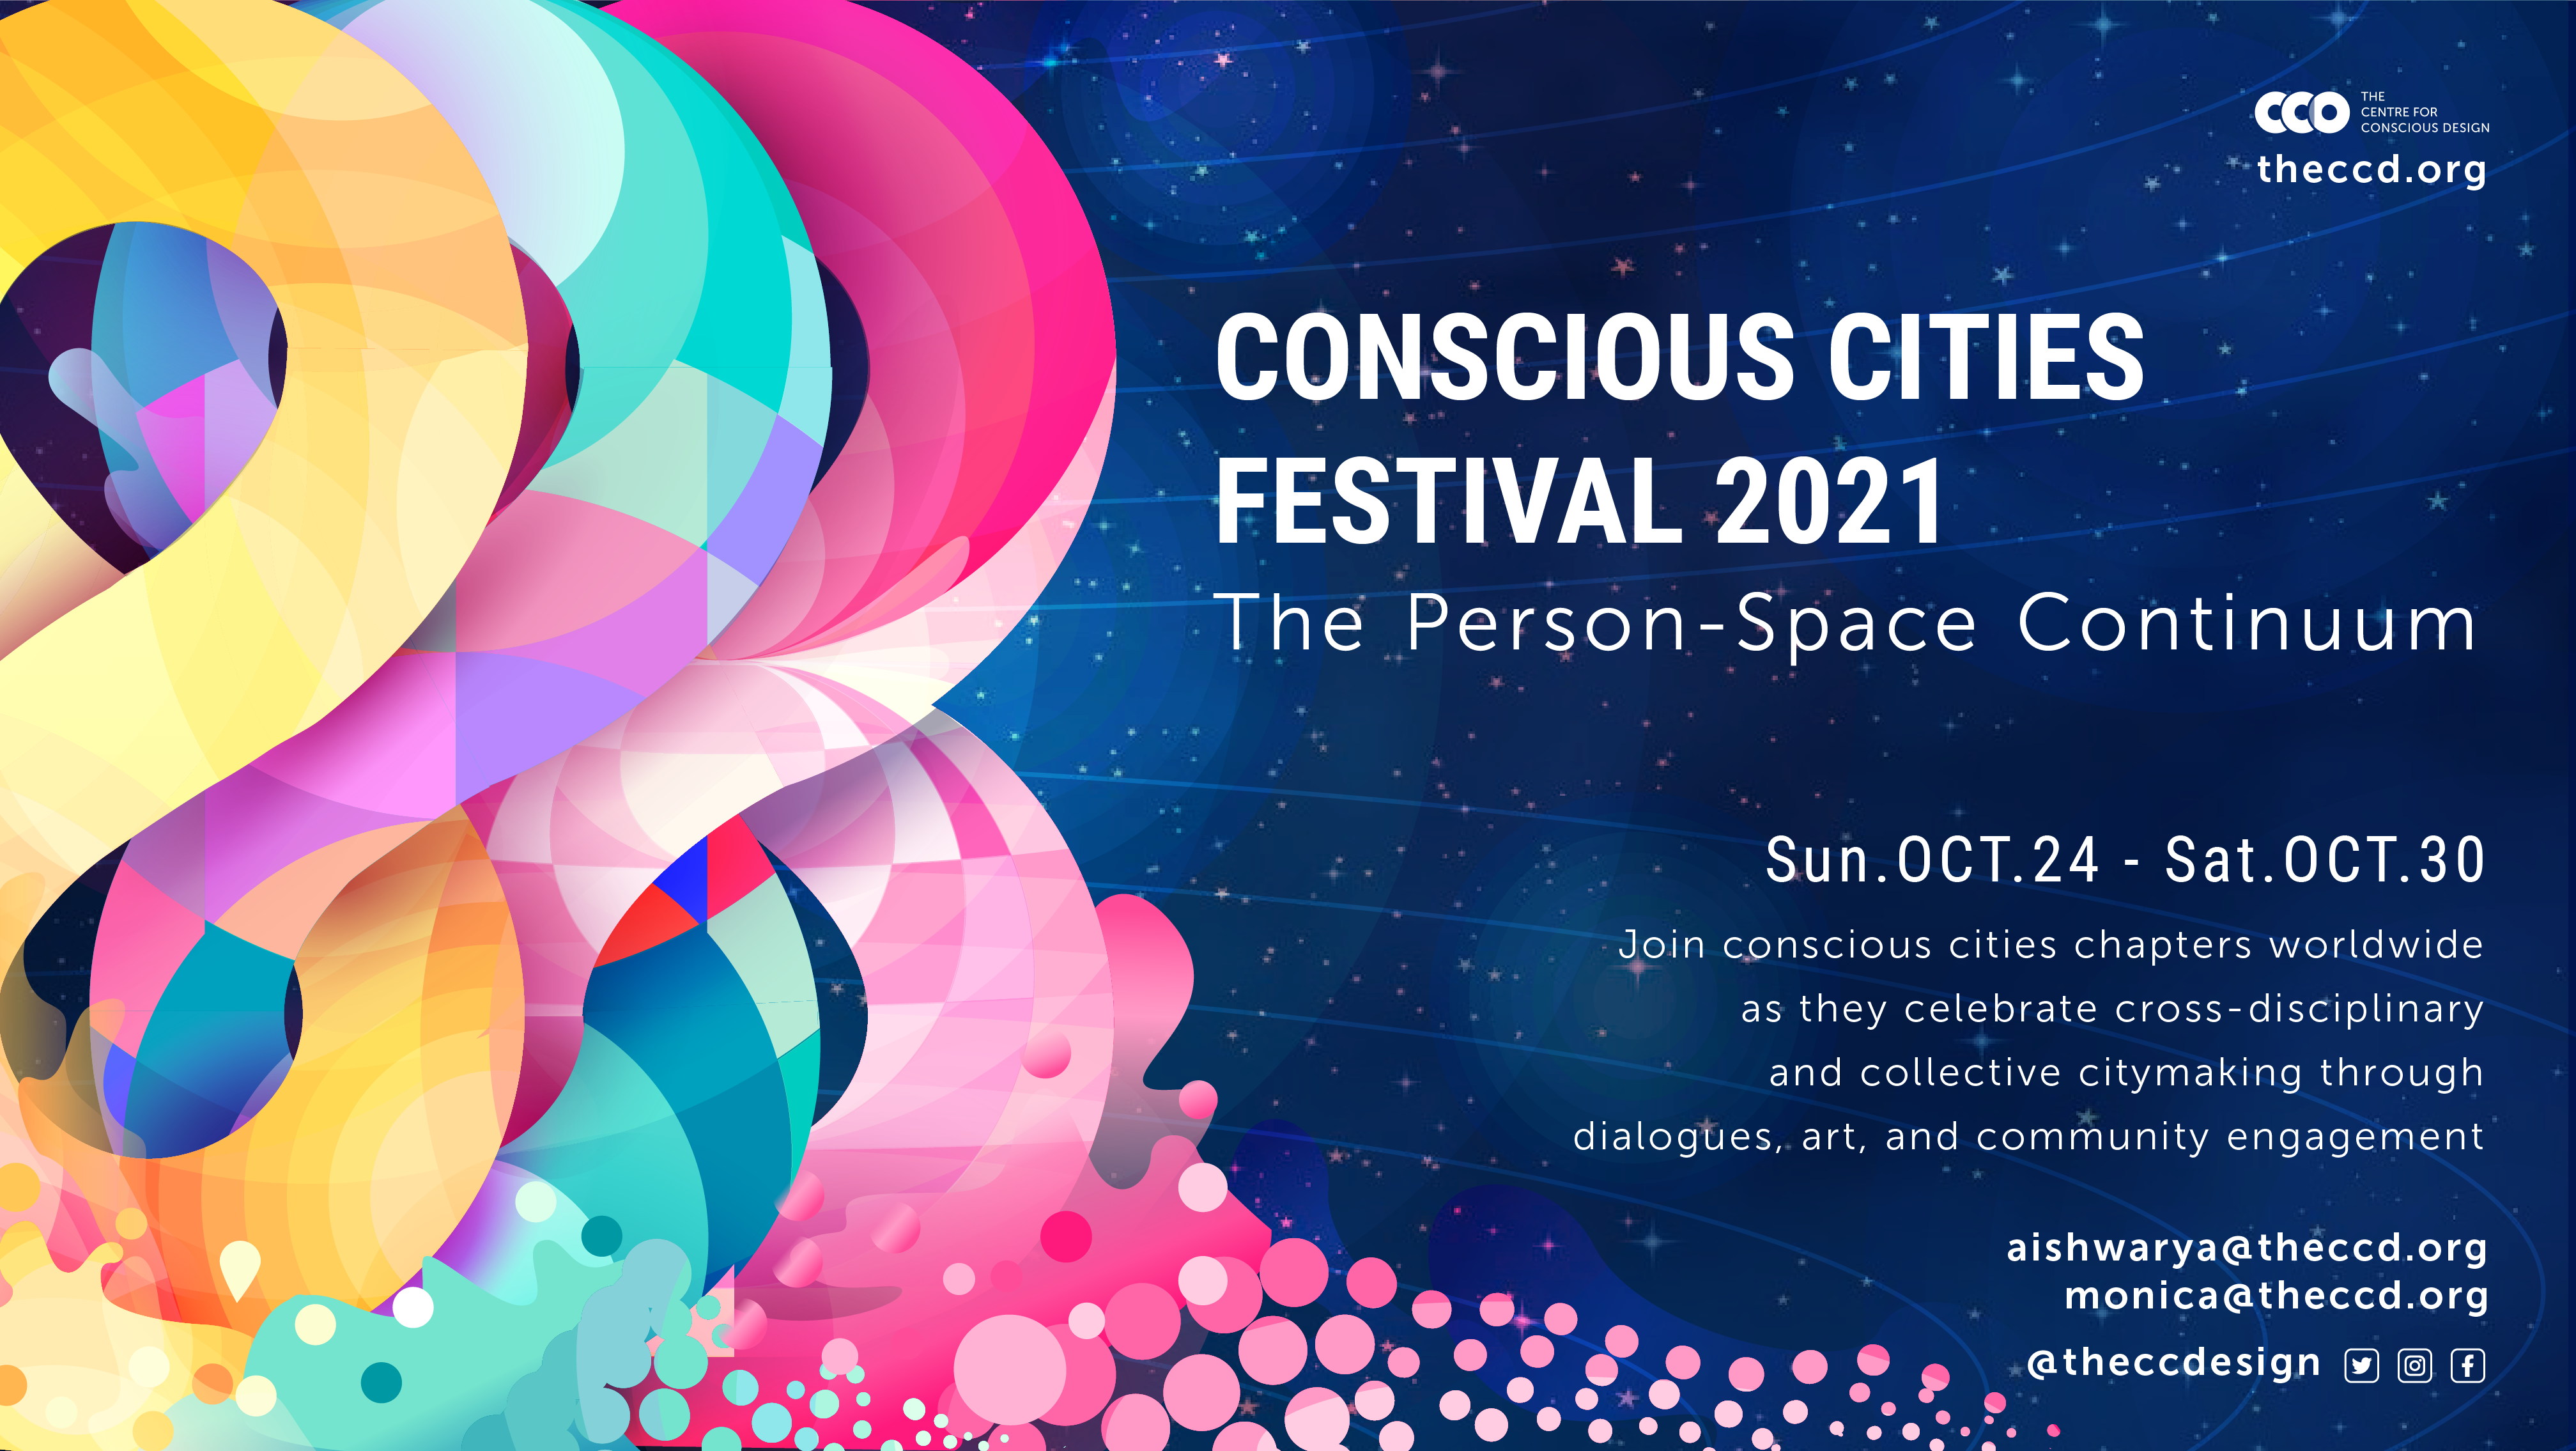 Conscious Cities Festival 2021 | The Person Space Continuum Poster image